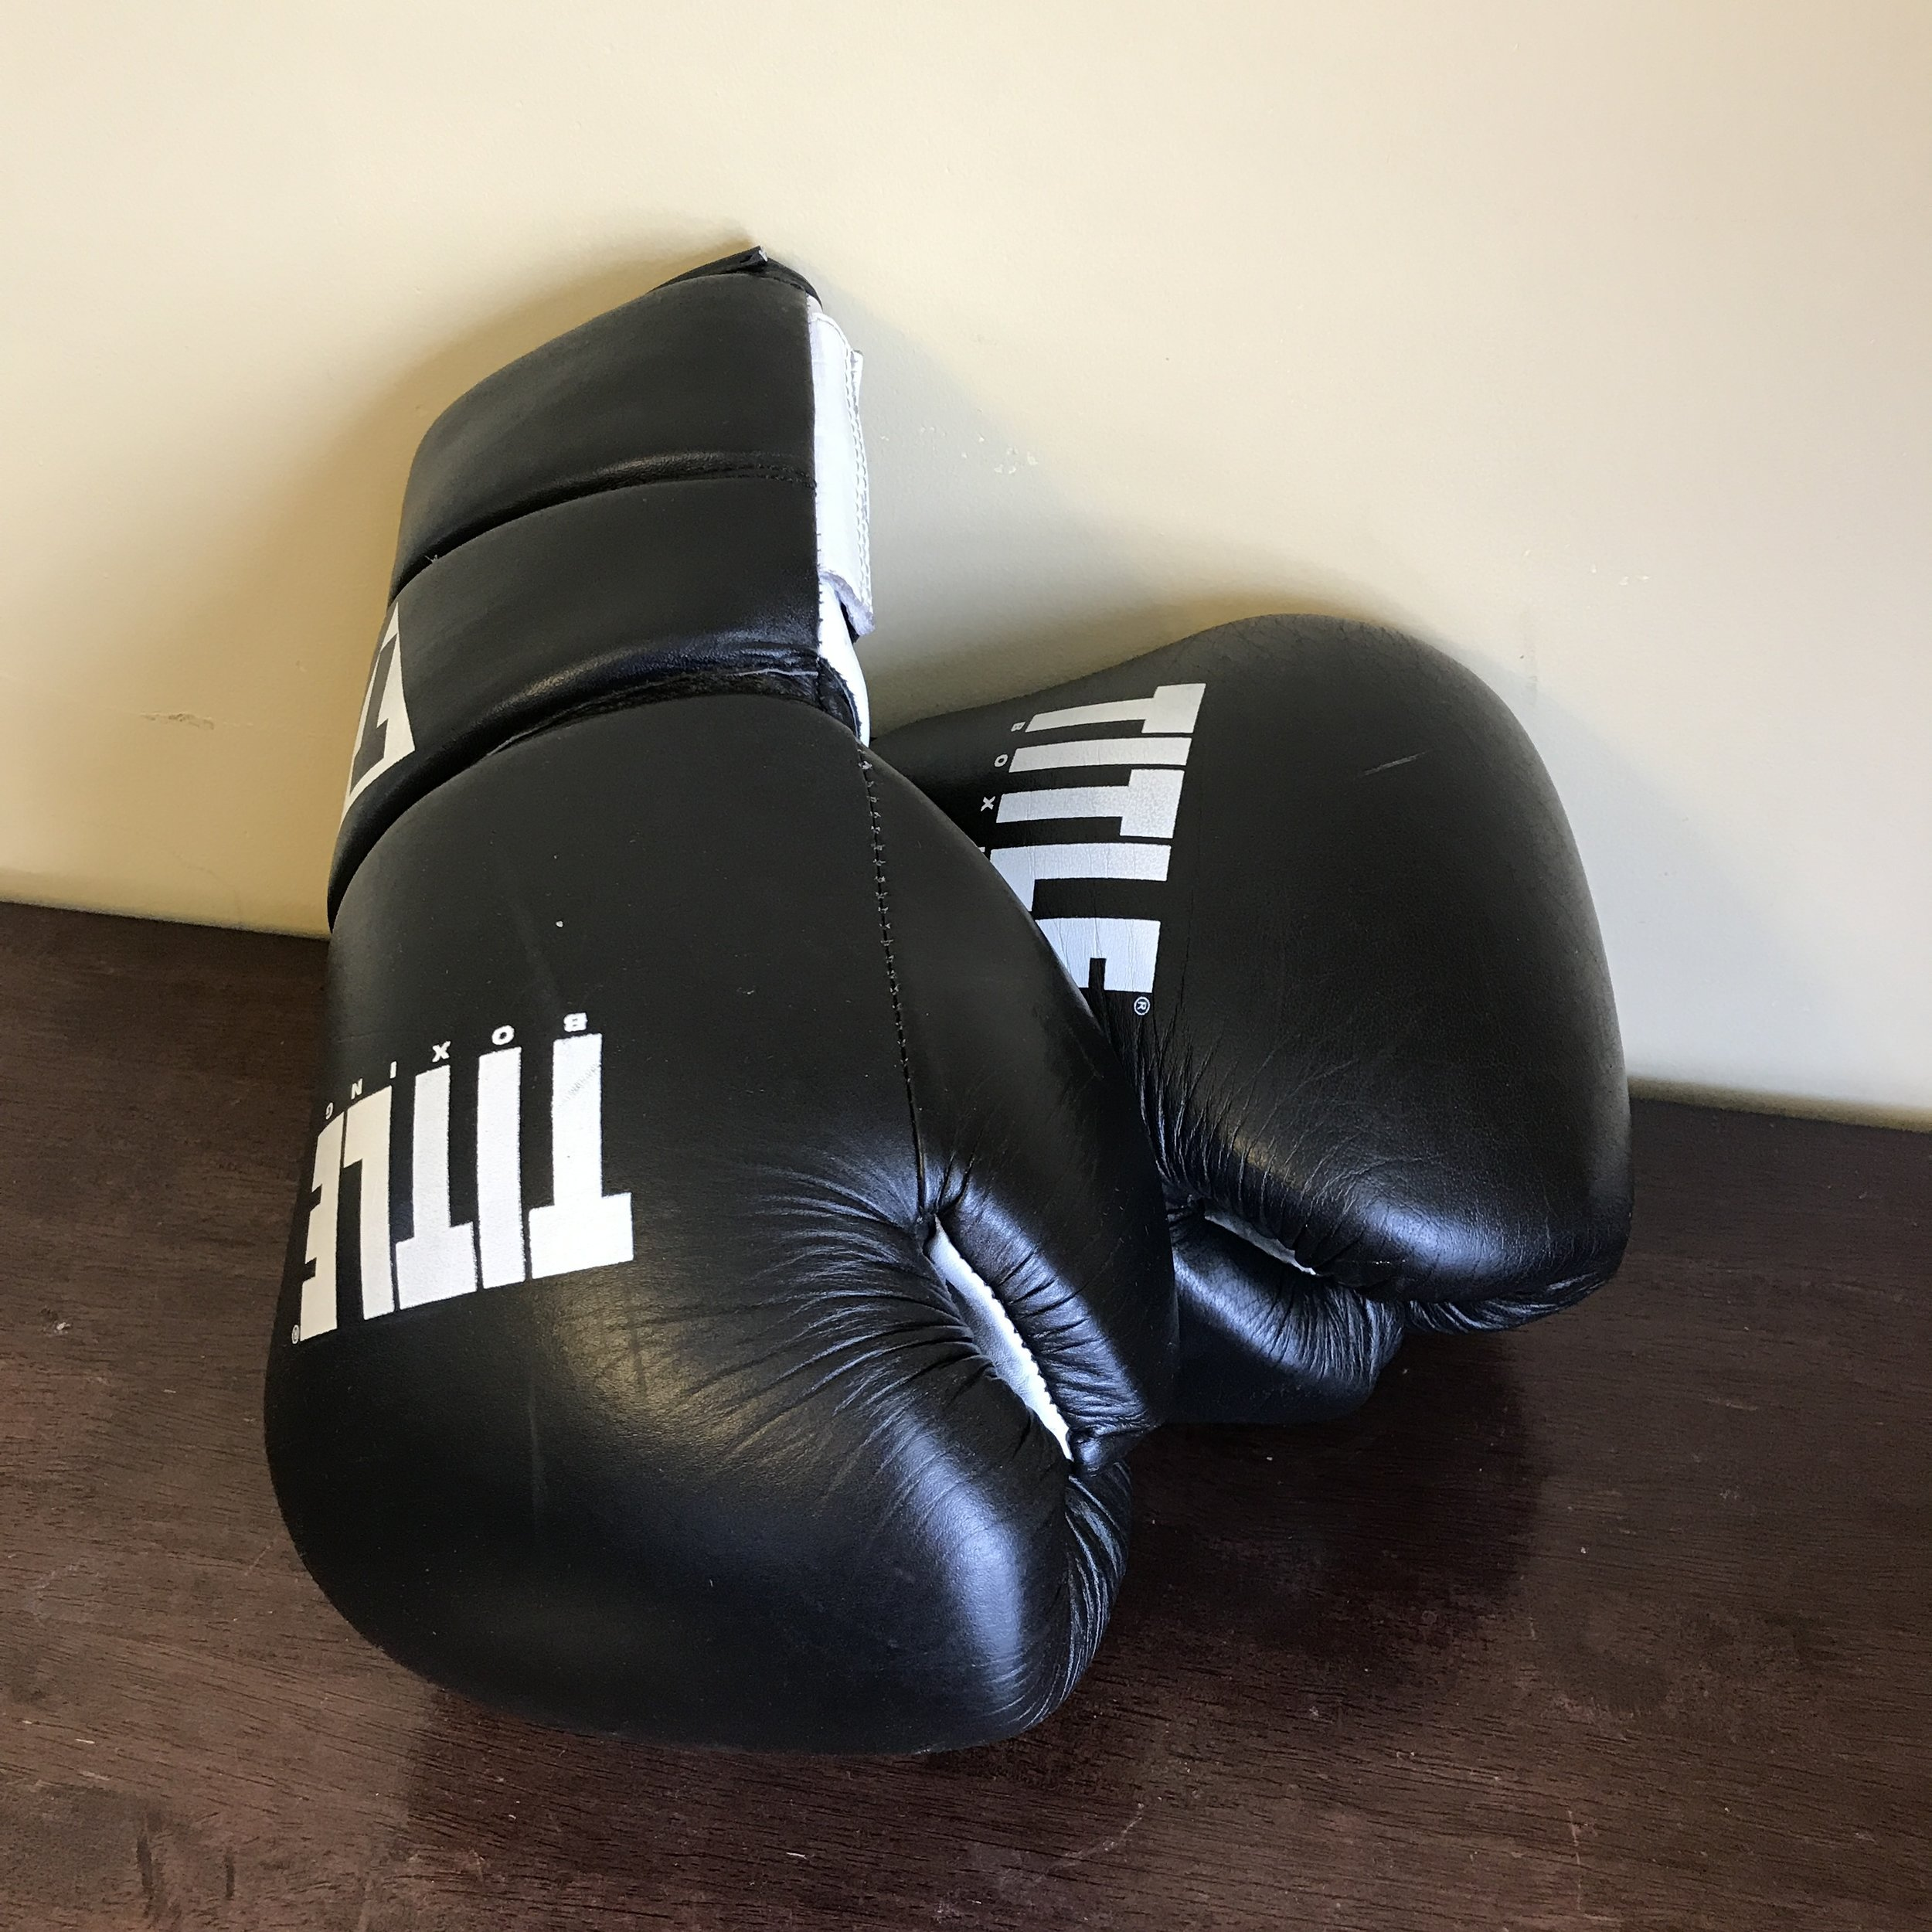 Title 16 oz. boxing gloves